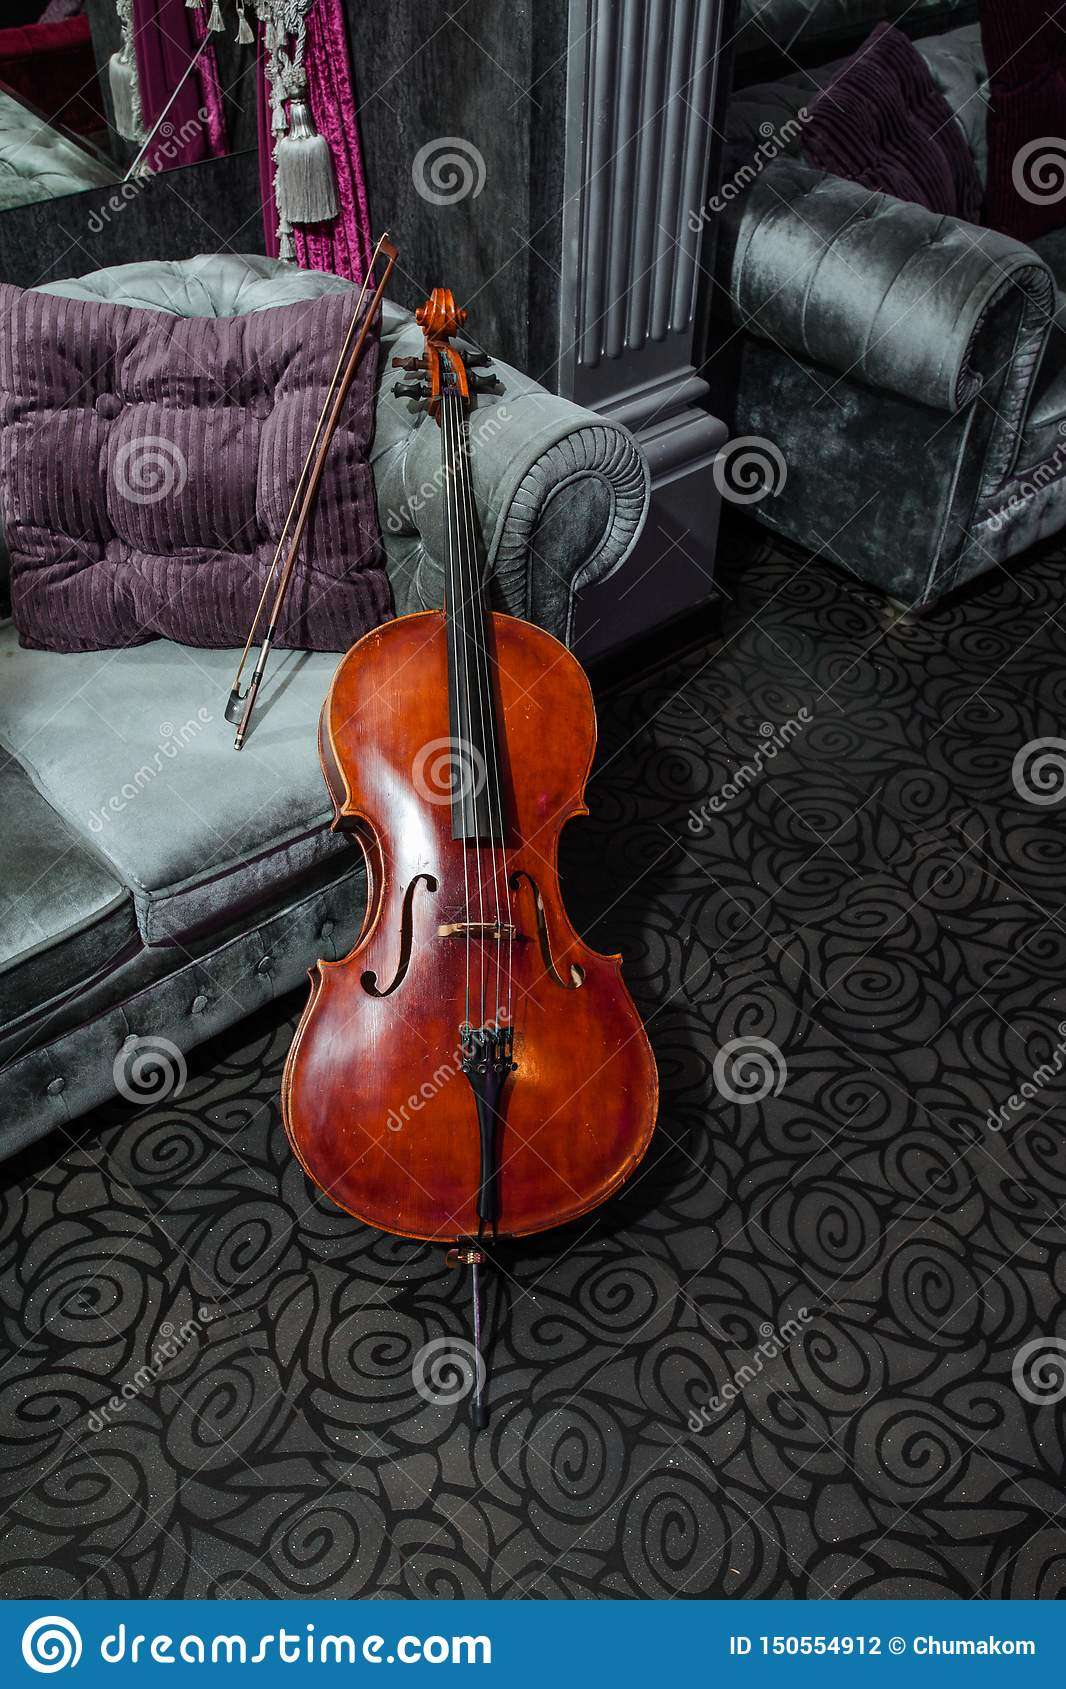 Cello on grey couch